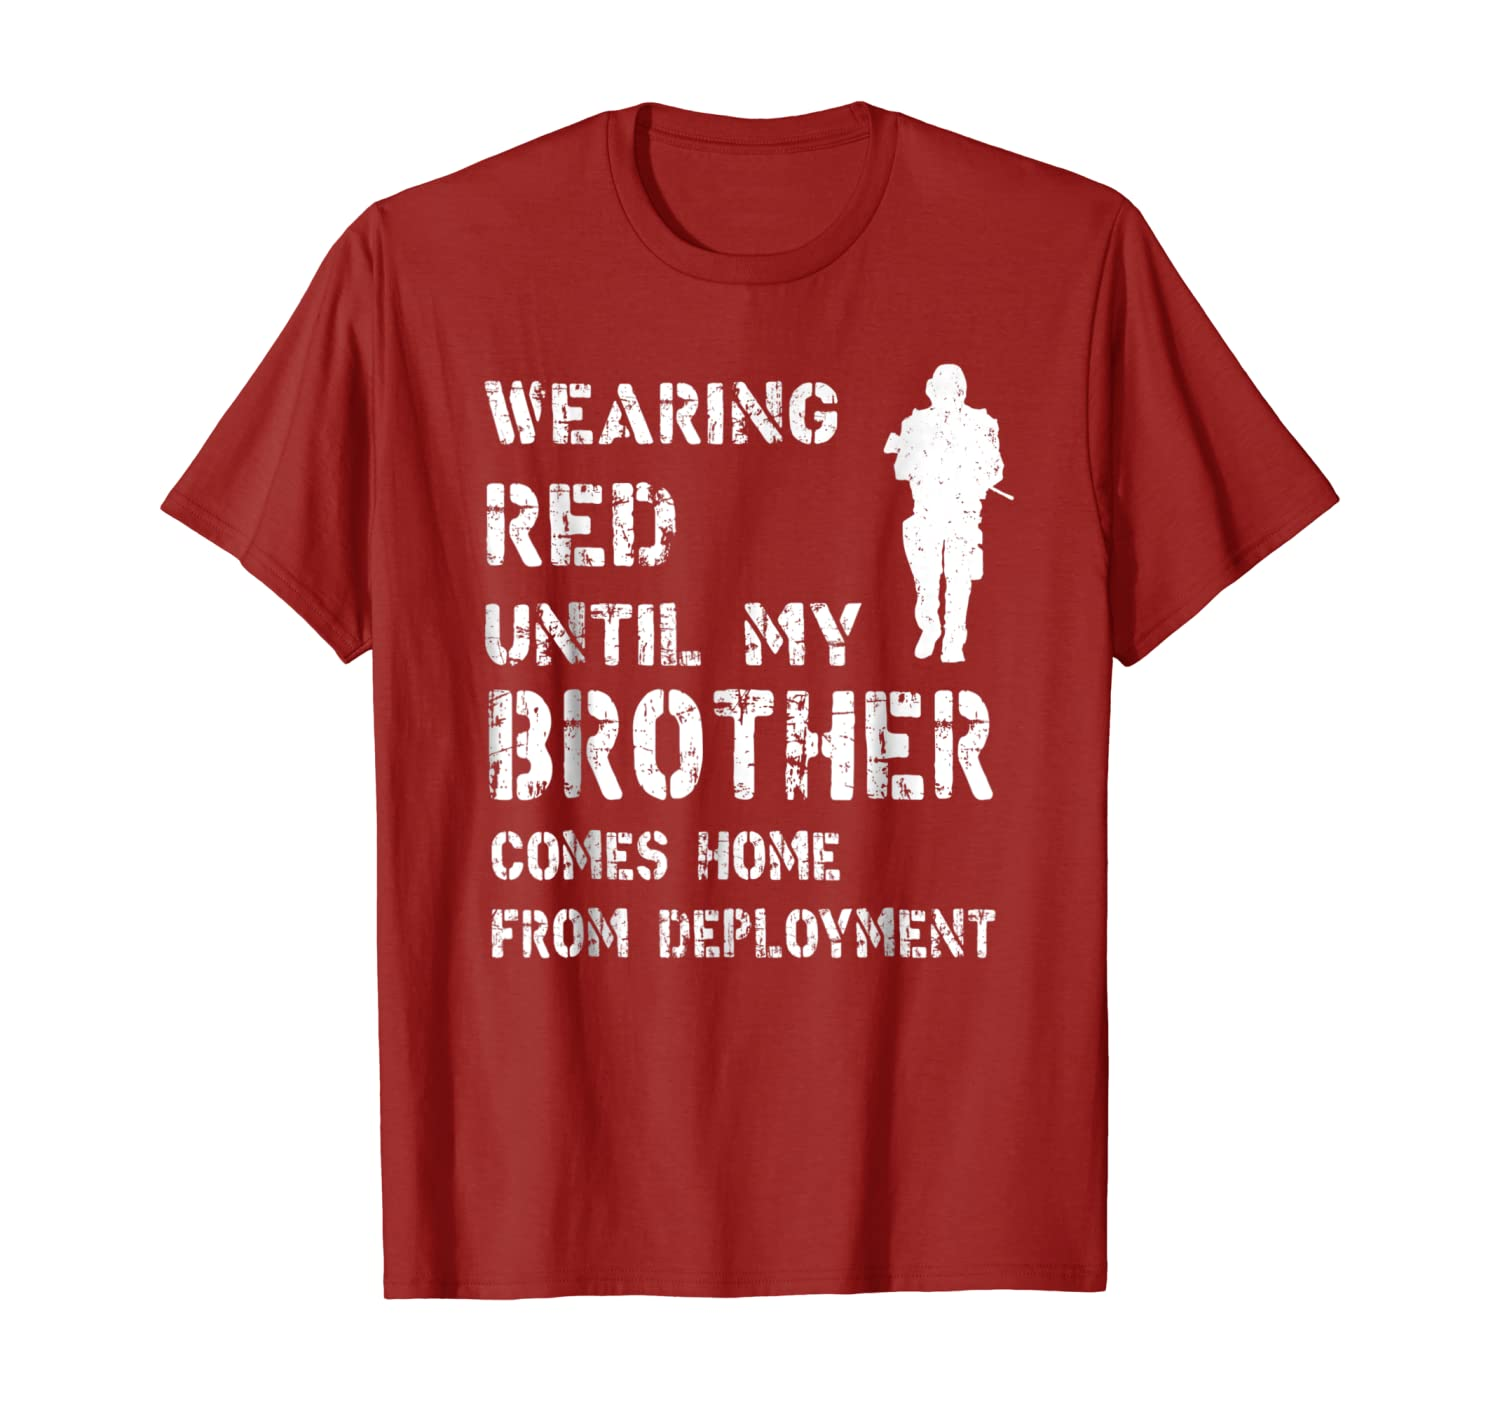 On Fridays We Wear Red Until My Brother Comes Home